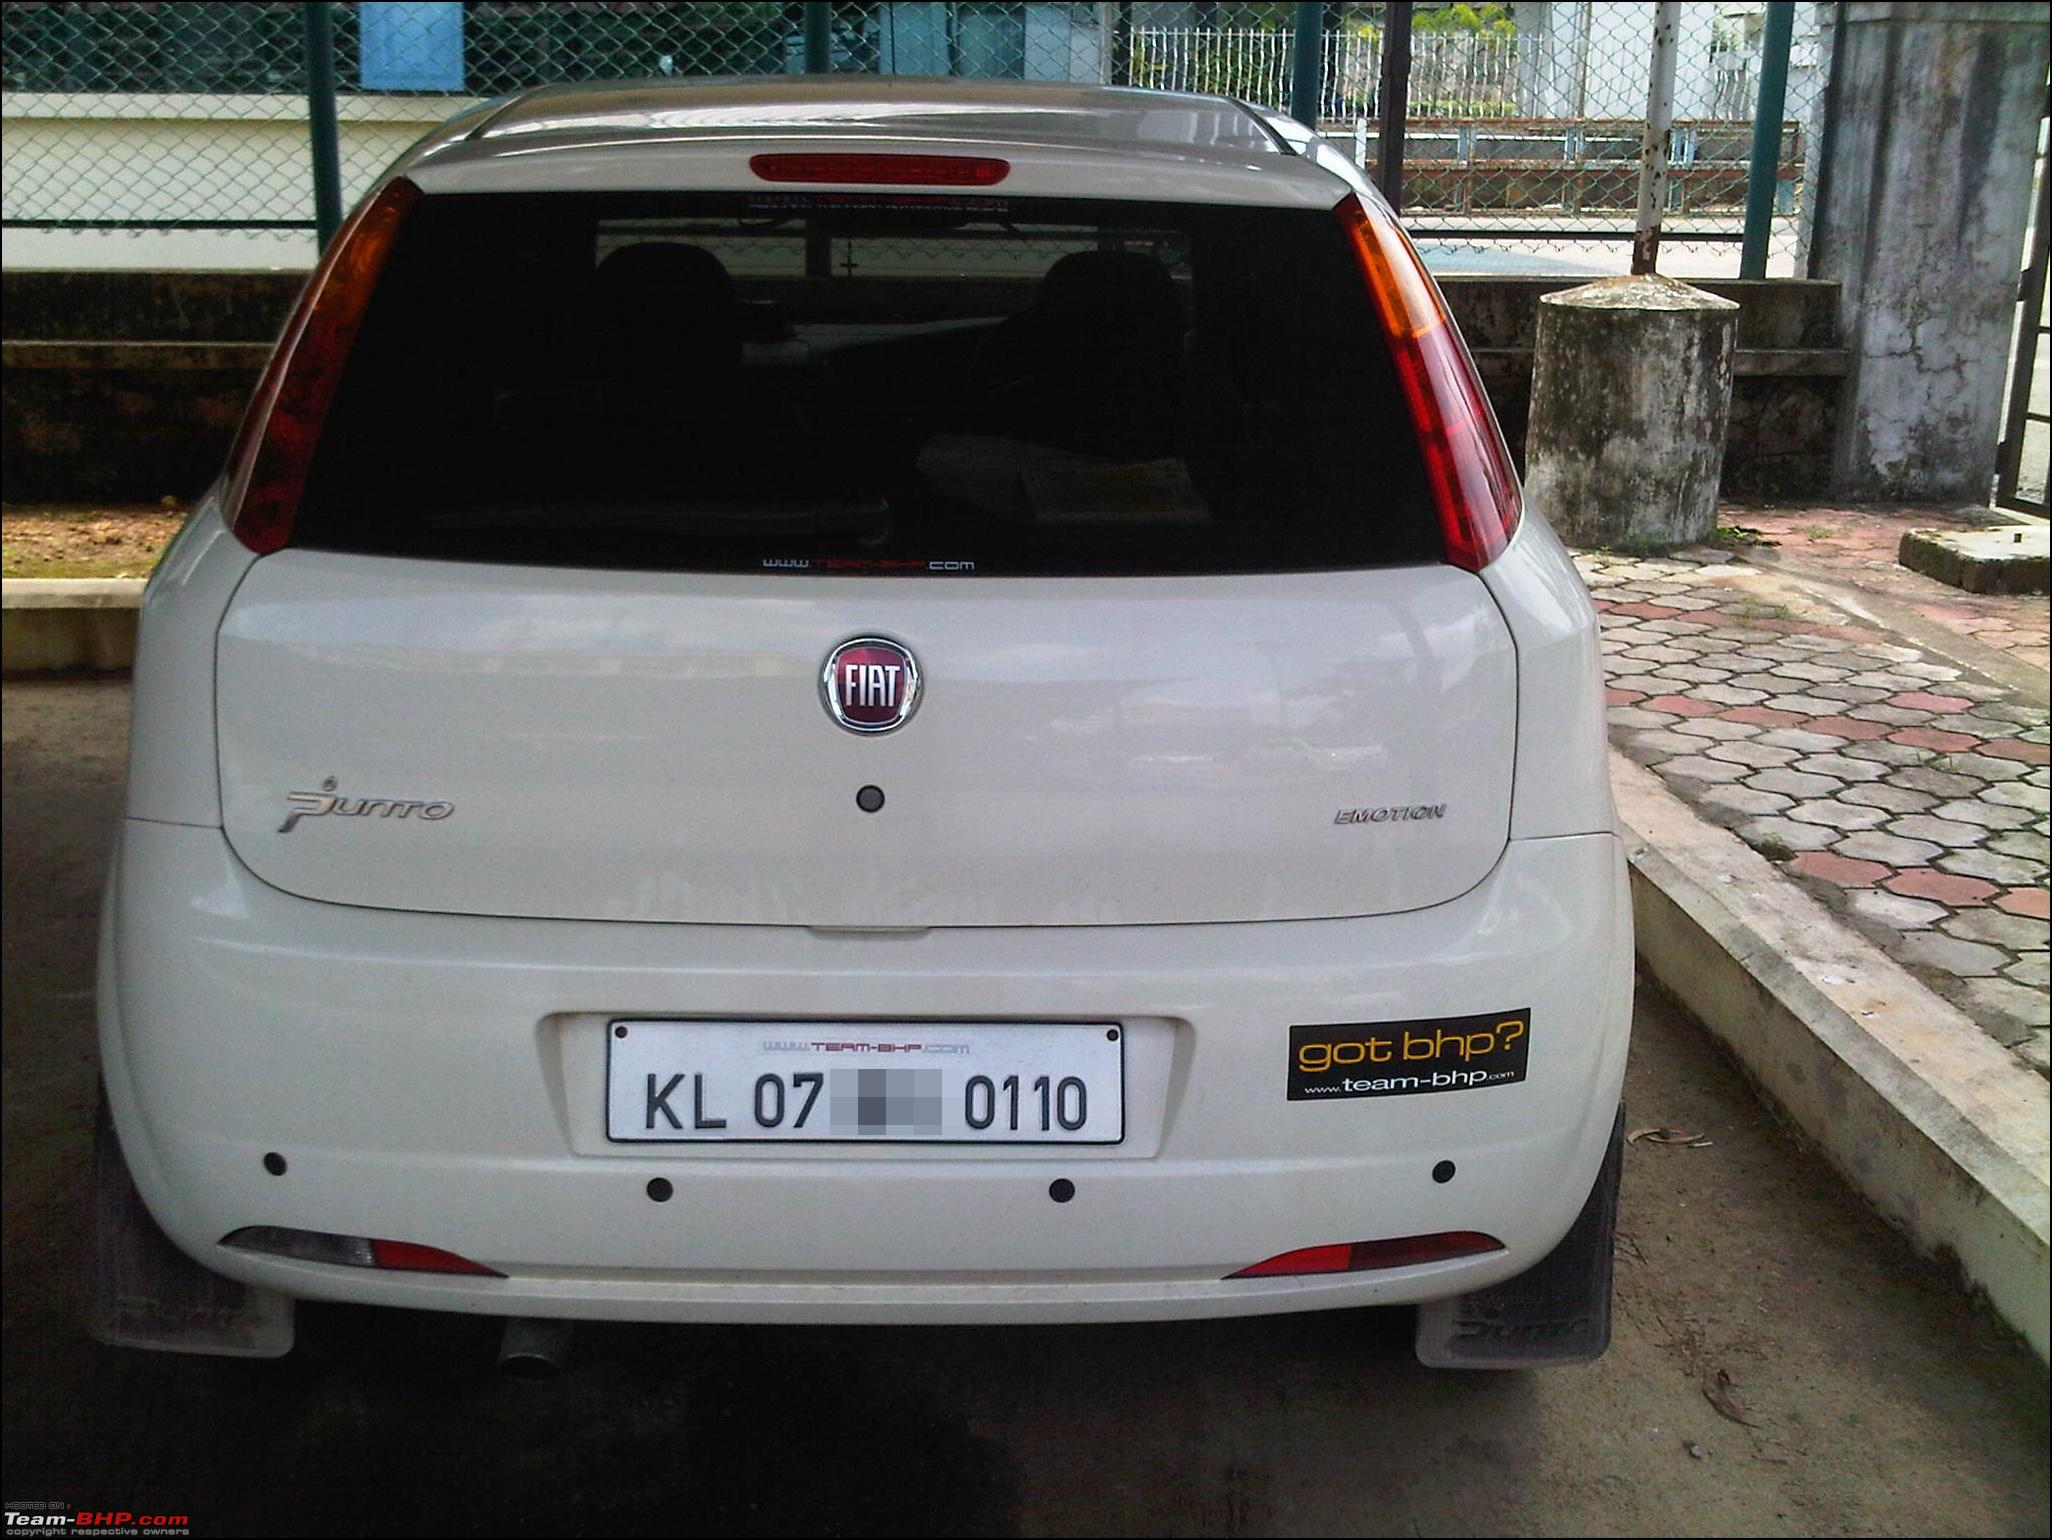 Car sticker design kl - Team Bhp Stickers Are Here Post Sightings Pics Of Them On Your Car